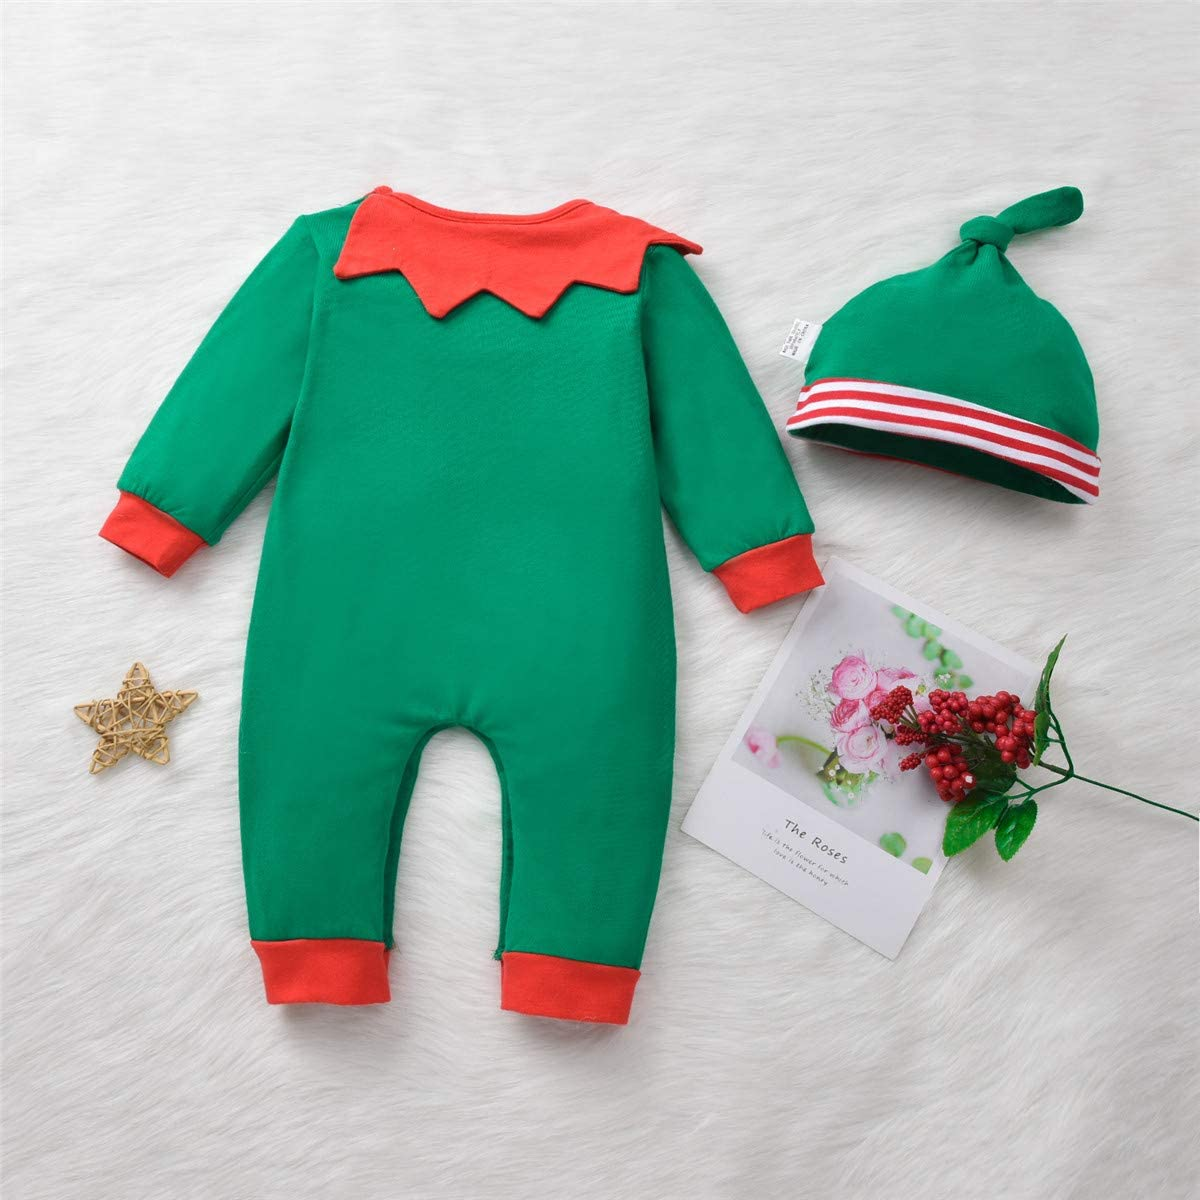 Baby-Christmas-Elf-Outfit-Onesies Jumsuit for Toddler Boys Girls Christmas Costume Pajamas Clothes